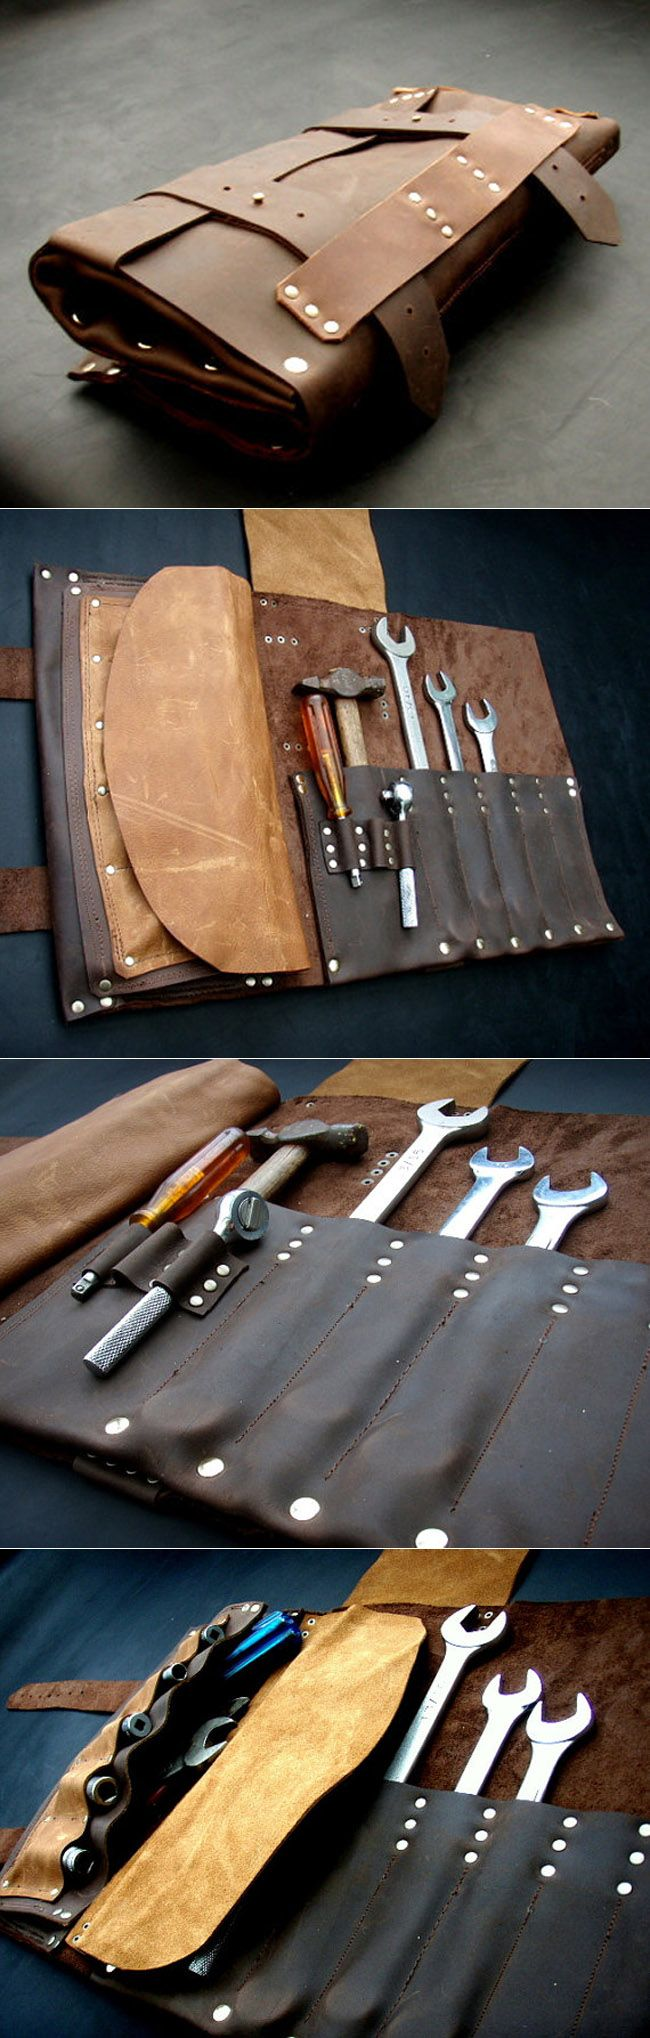 TOOL ROLLS - COULD BE COOL WITH TIRE GUAGE AND WRENCHES - MAYBE FOR TEXTURE SHOTS